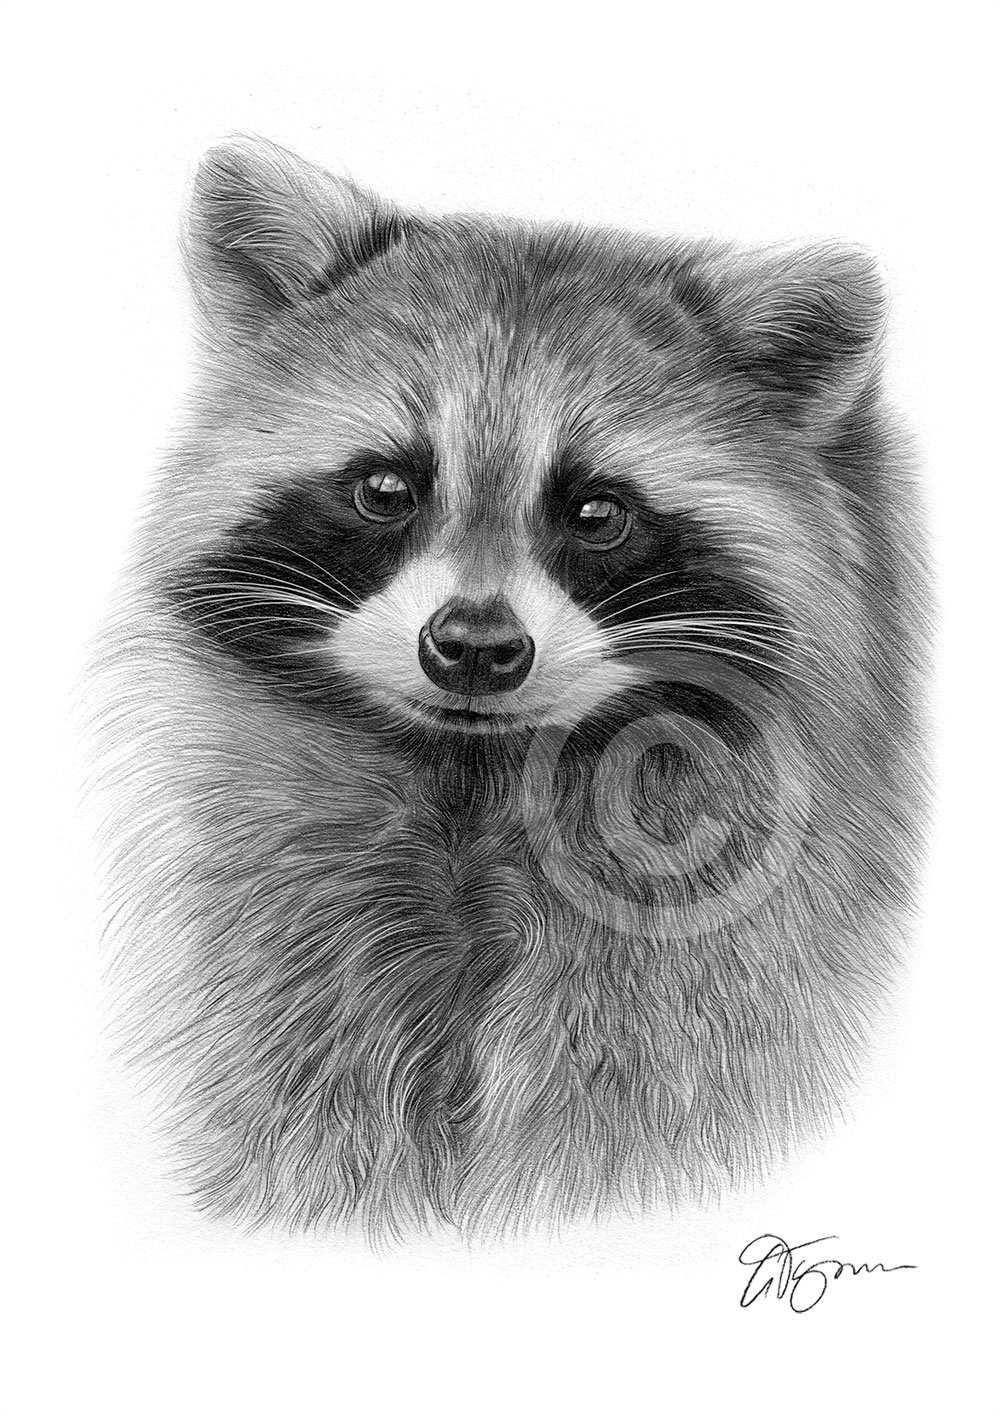 RACCOON pencil drawing art print A3 / A4 sizes signed ... Raccoon Drawing